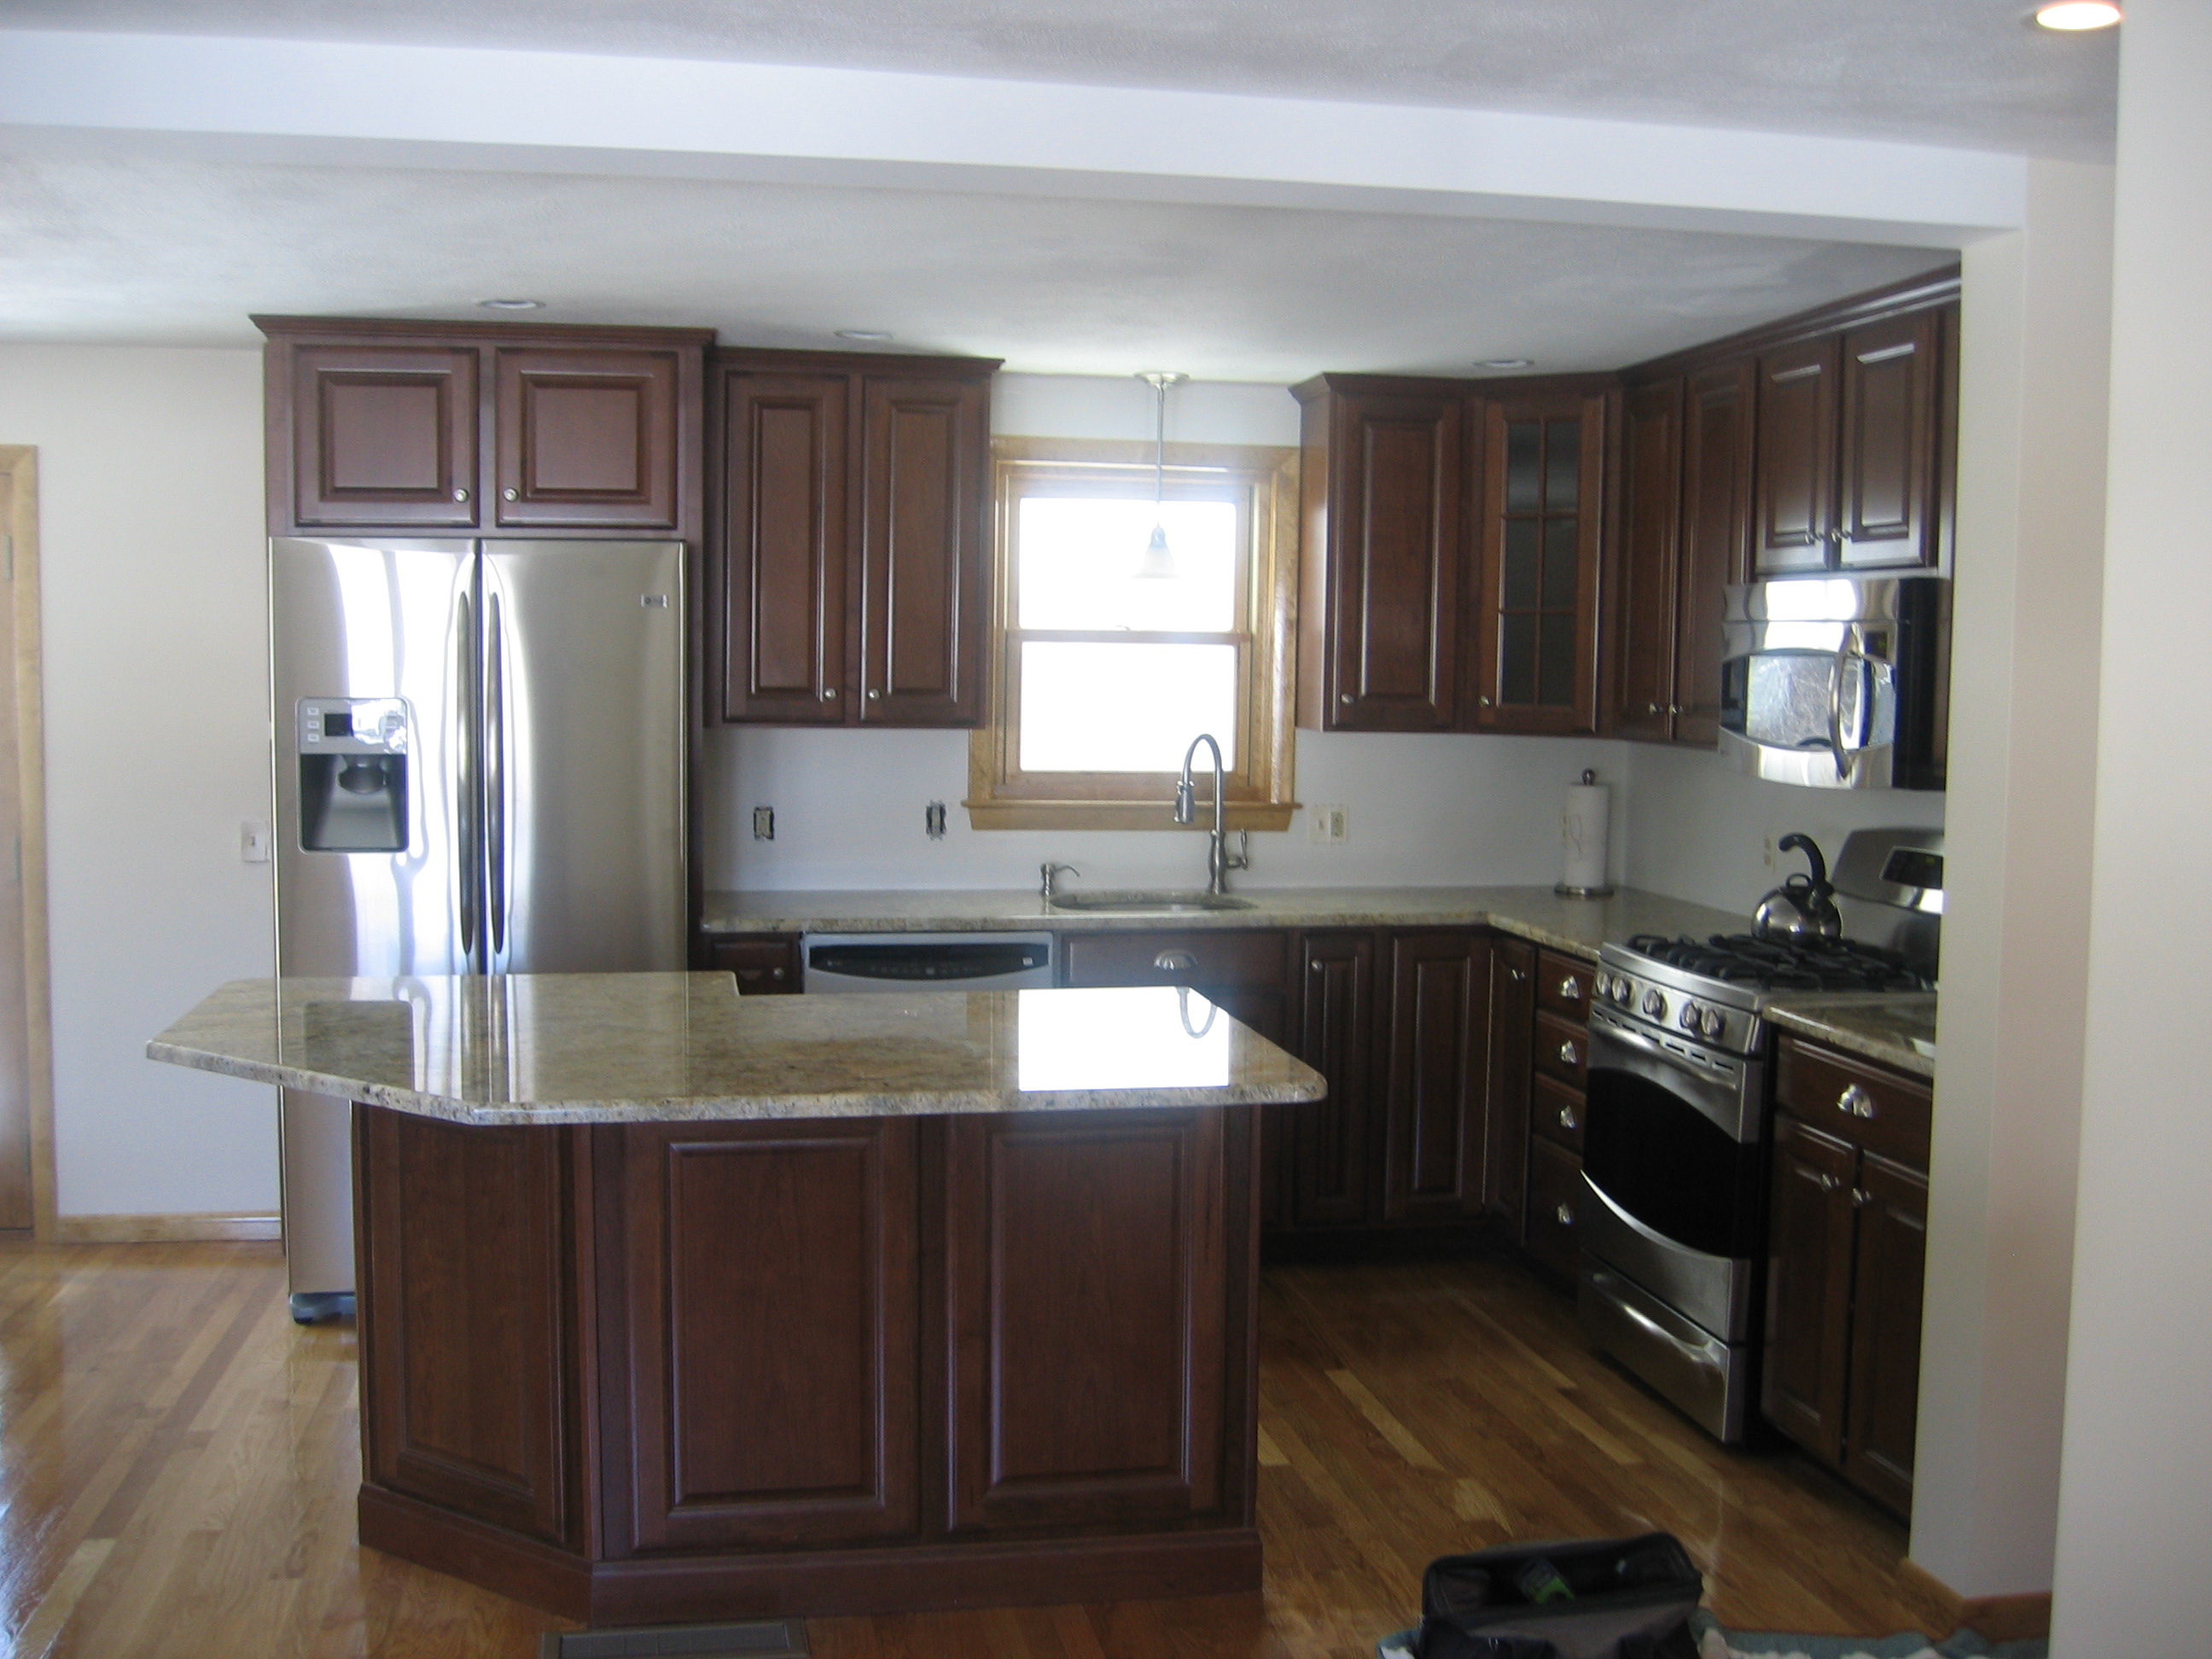 Outstanding Kitchen Renovation 2592 x 1944 · 982 kB · jpeg